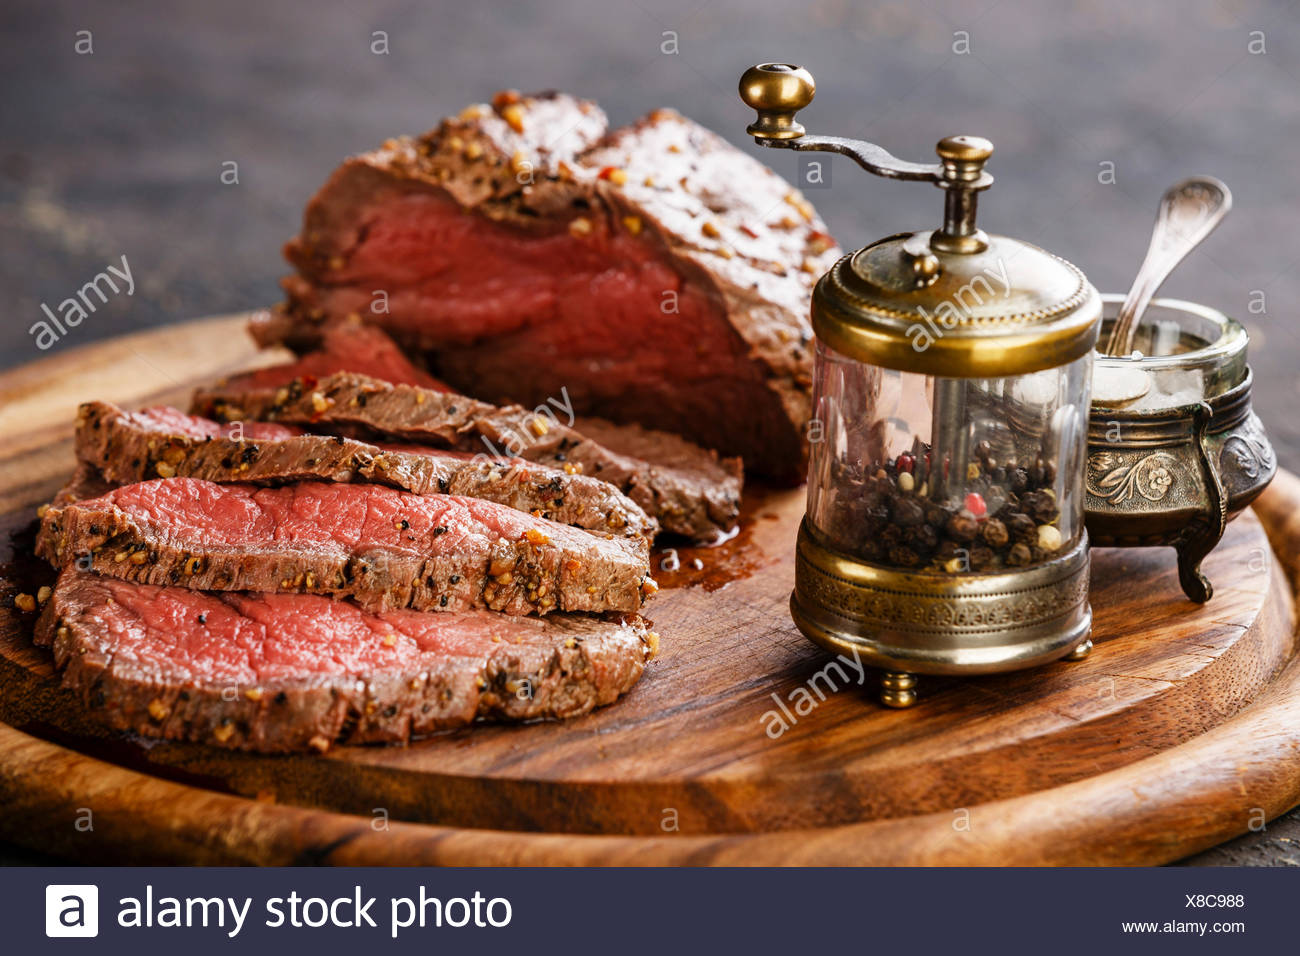 Roast beef on cutting board with saltcellar and pepper mill - Stock Image